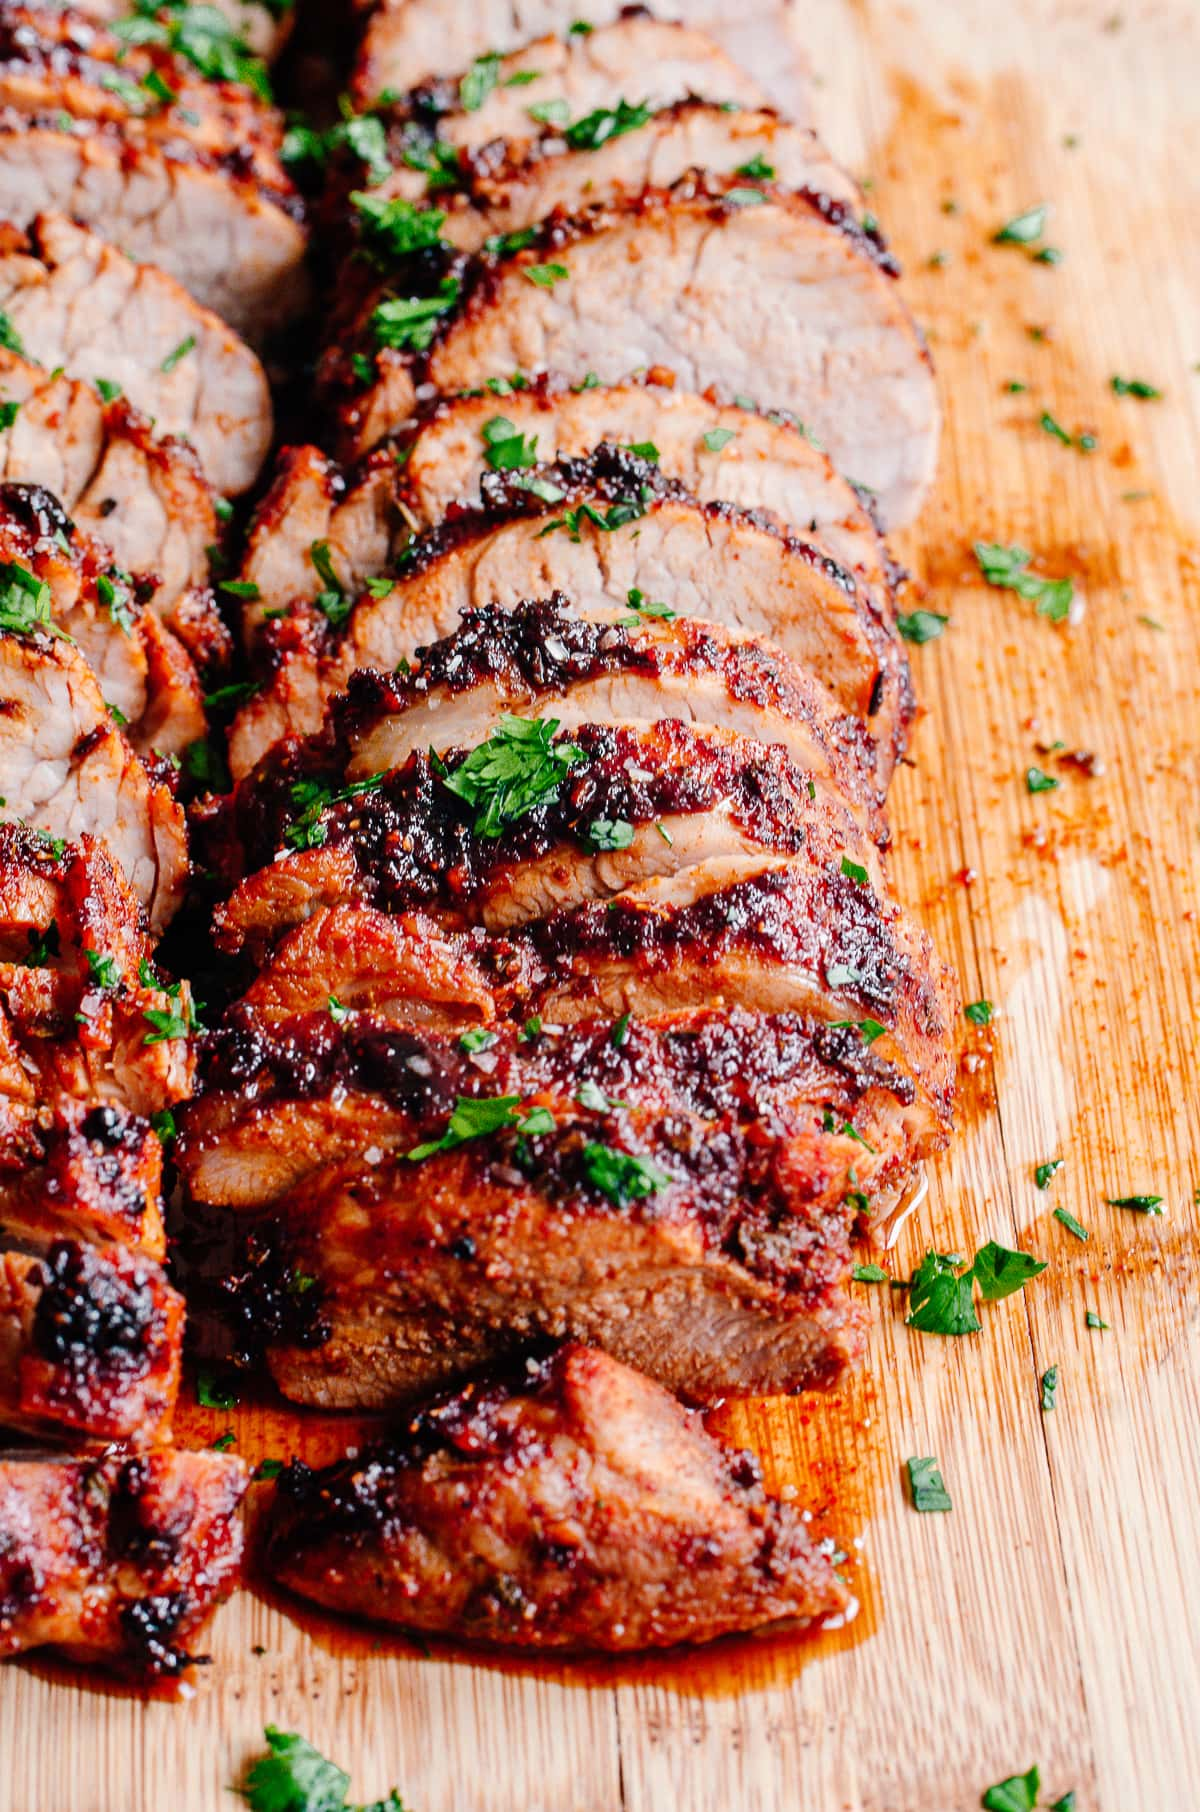 Pork tenderloin sliced on a wood cutting board with juices on the board and fresh cilantro.